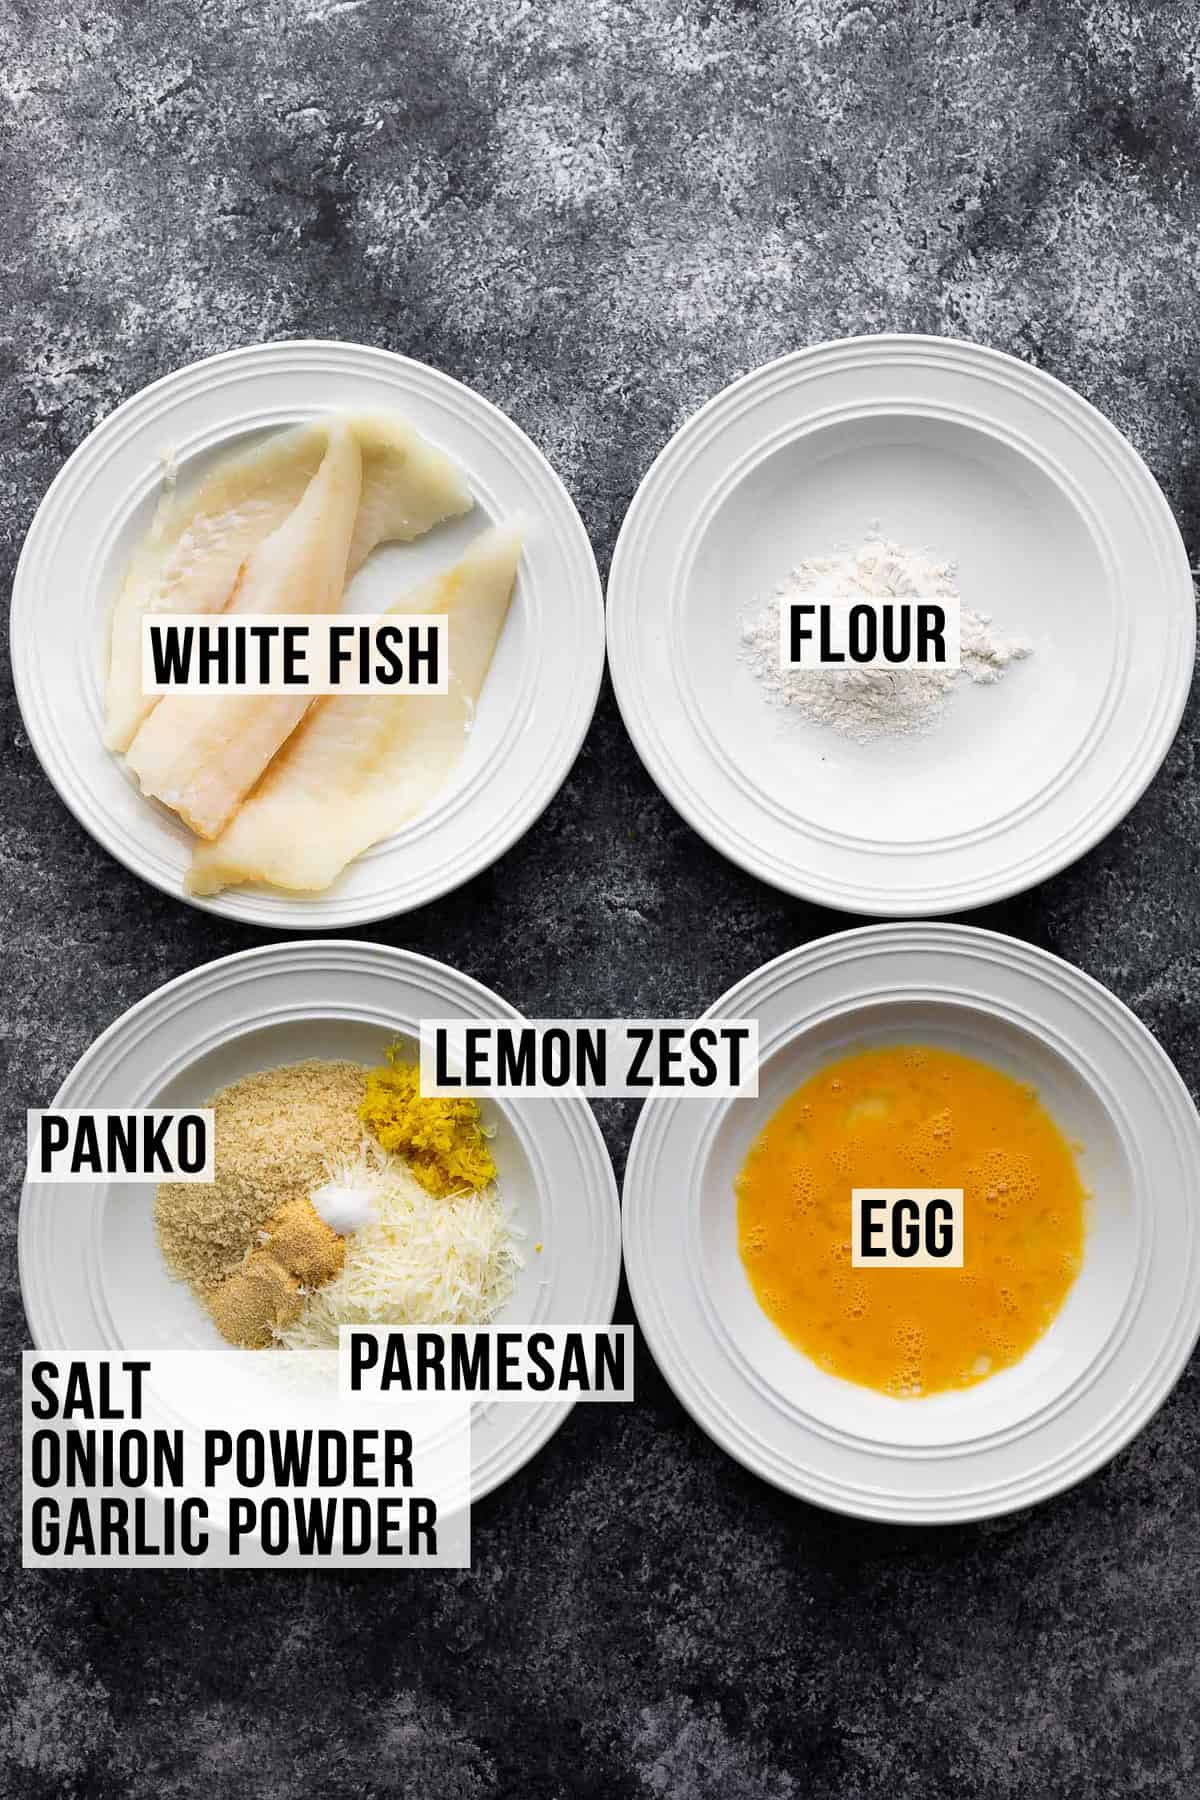 Ingredients for deep-fried fish (with label)